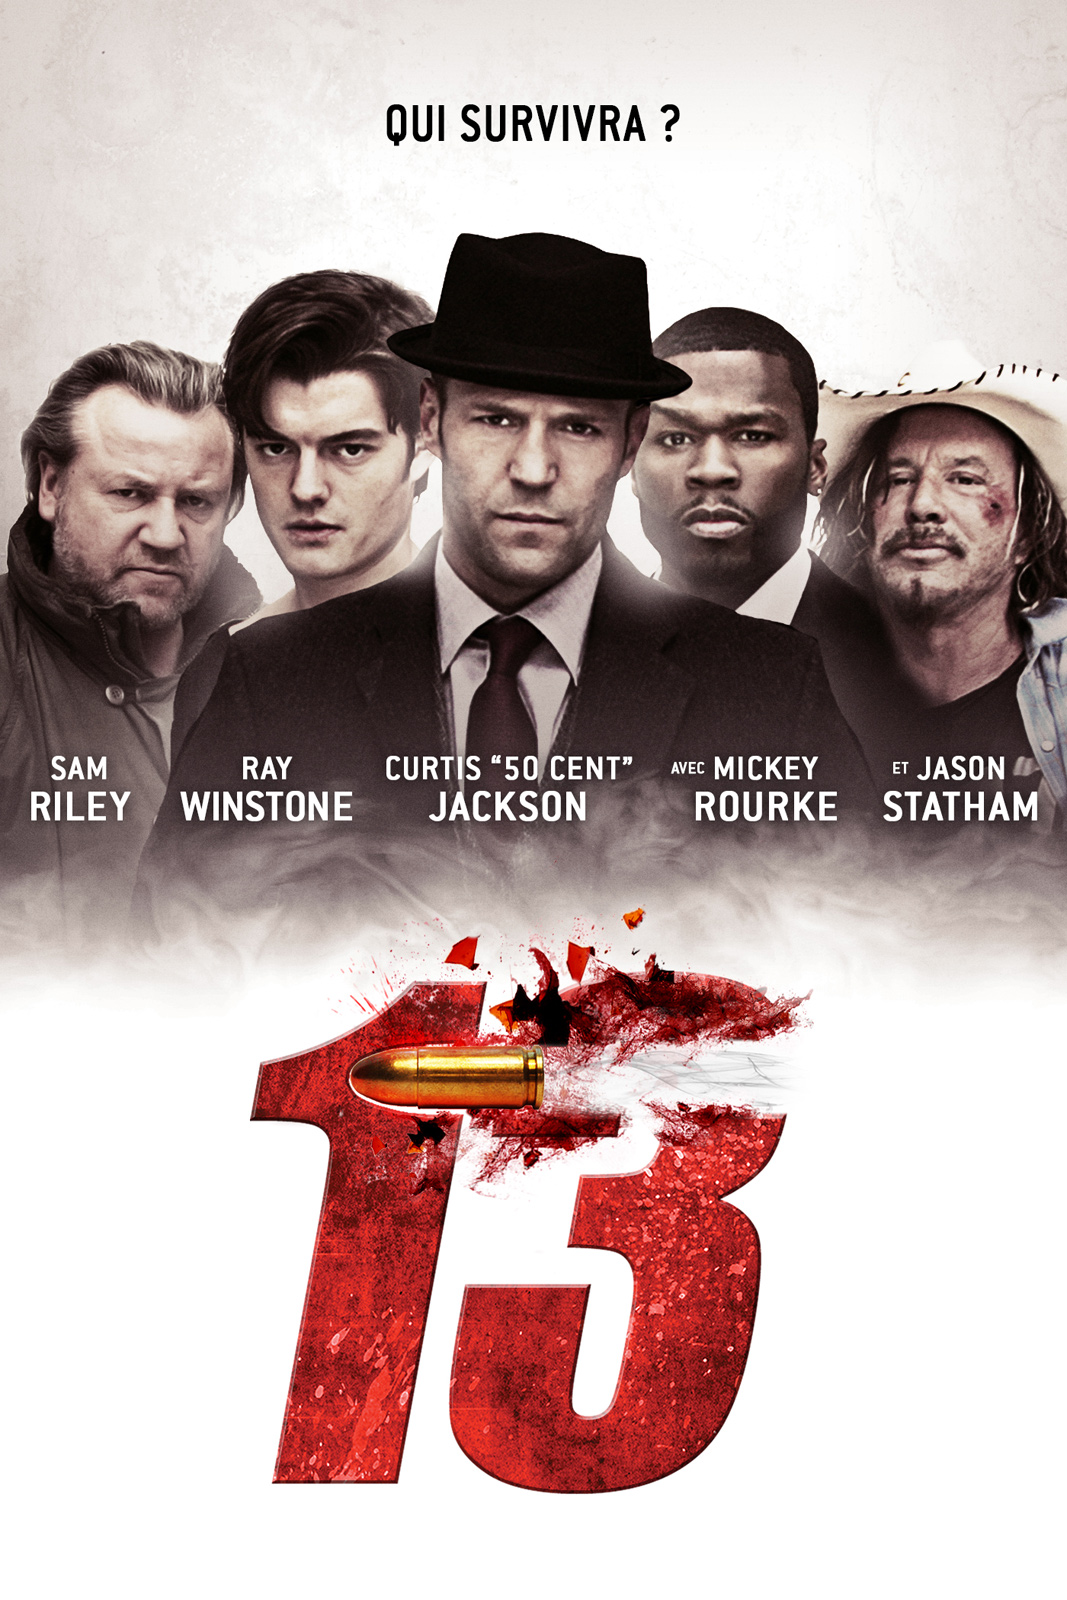 Film roulette russe 13 streaming what do las vegas blackjack dealers stand on